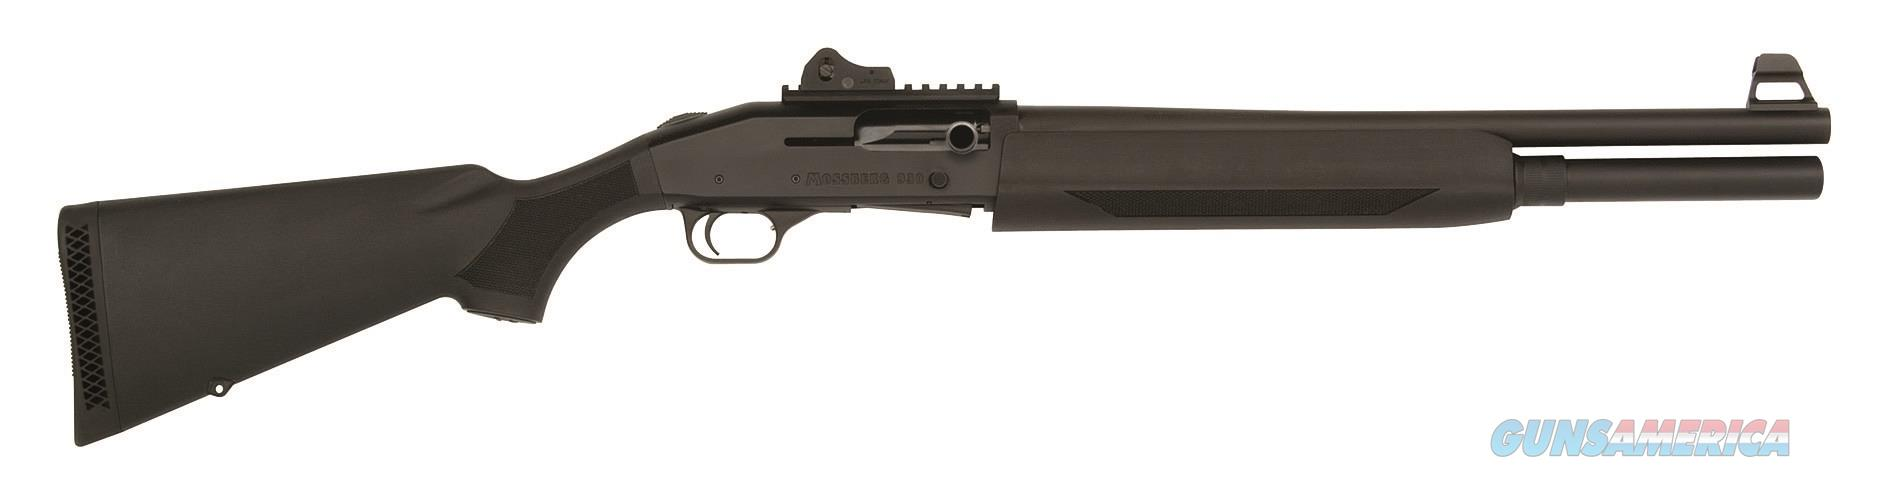 "Mossberg 930 Tactical 12 Gauge 18.5"" 7+1 - New in Case  Guns > Shotguns > Mossberg Shotguns > Autoloaders"